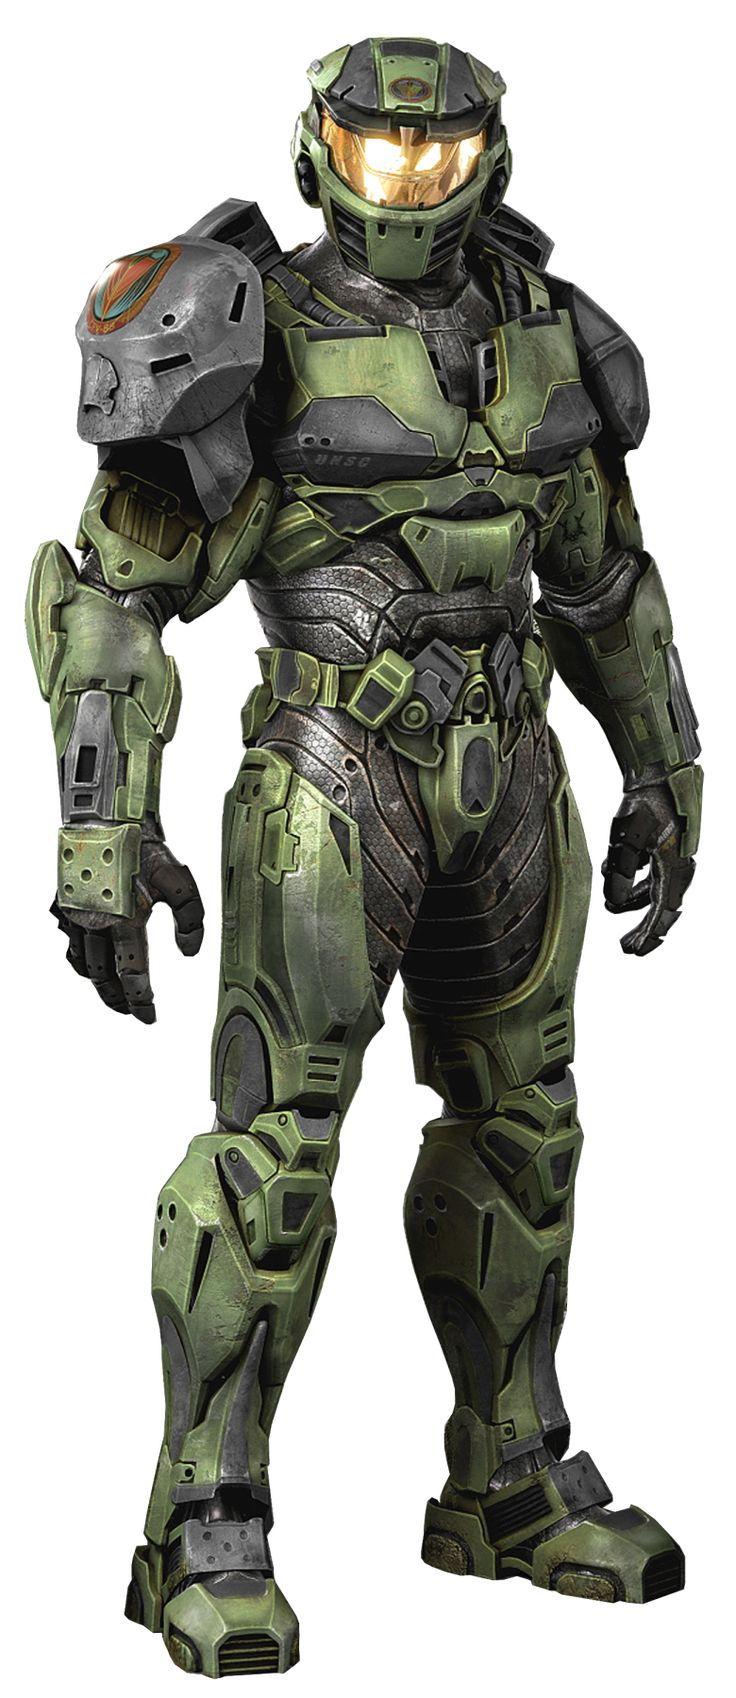 Halo mark iv google search cosplay pinterest - Halo 4 photos ...